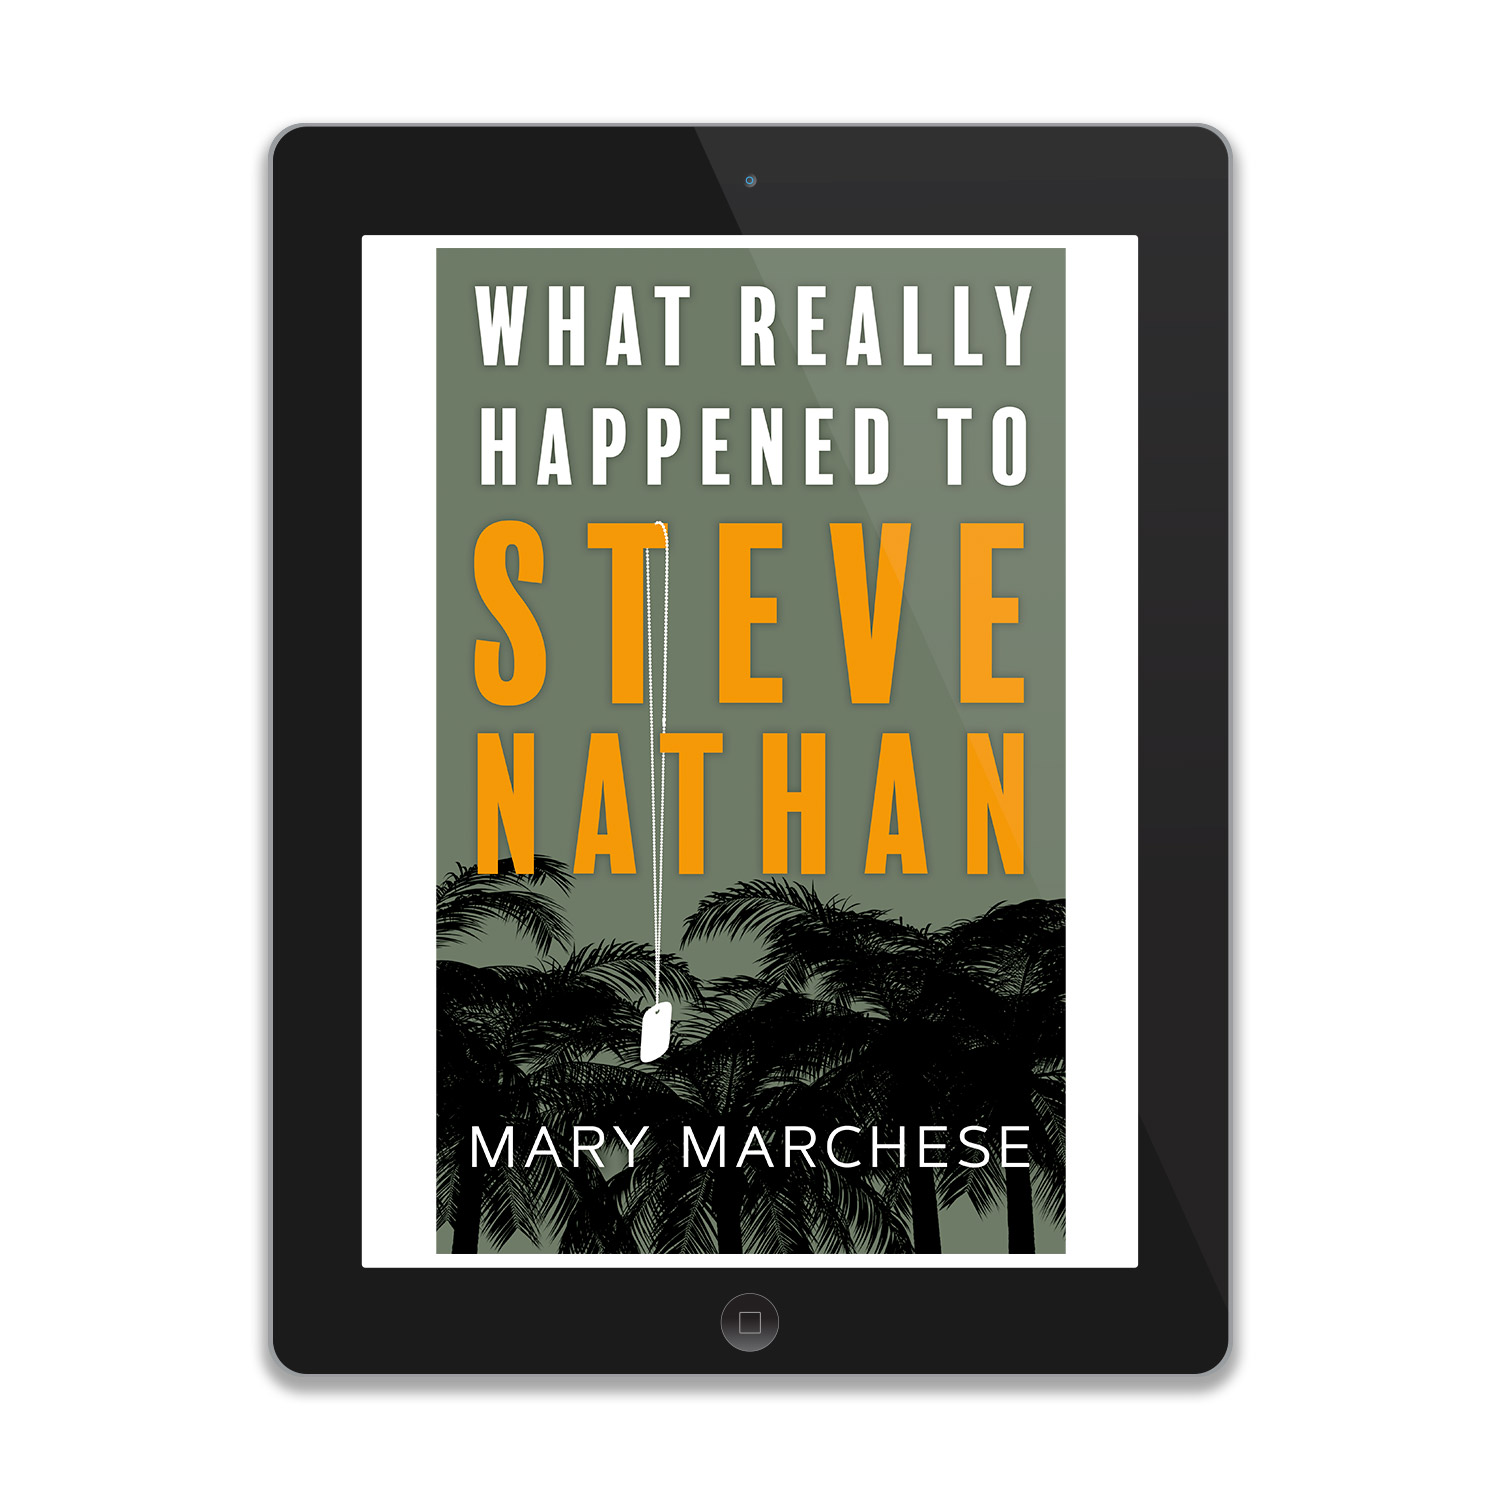 'What Really Happened To Steve Nathan' is a telling family mystery, set against the backdrop of the Vietnam War, by Mary Marchese. The book cover and interior were designed by Mark Thomas, of coverness.com. To find out more about my book design services, please visit www.coverness.com.